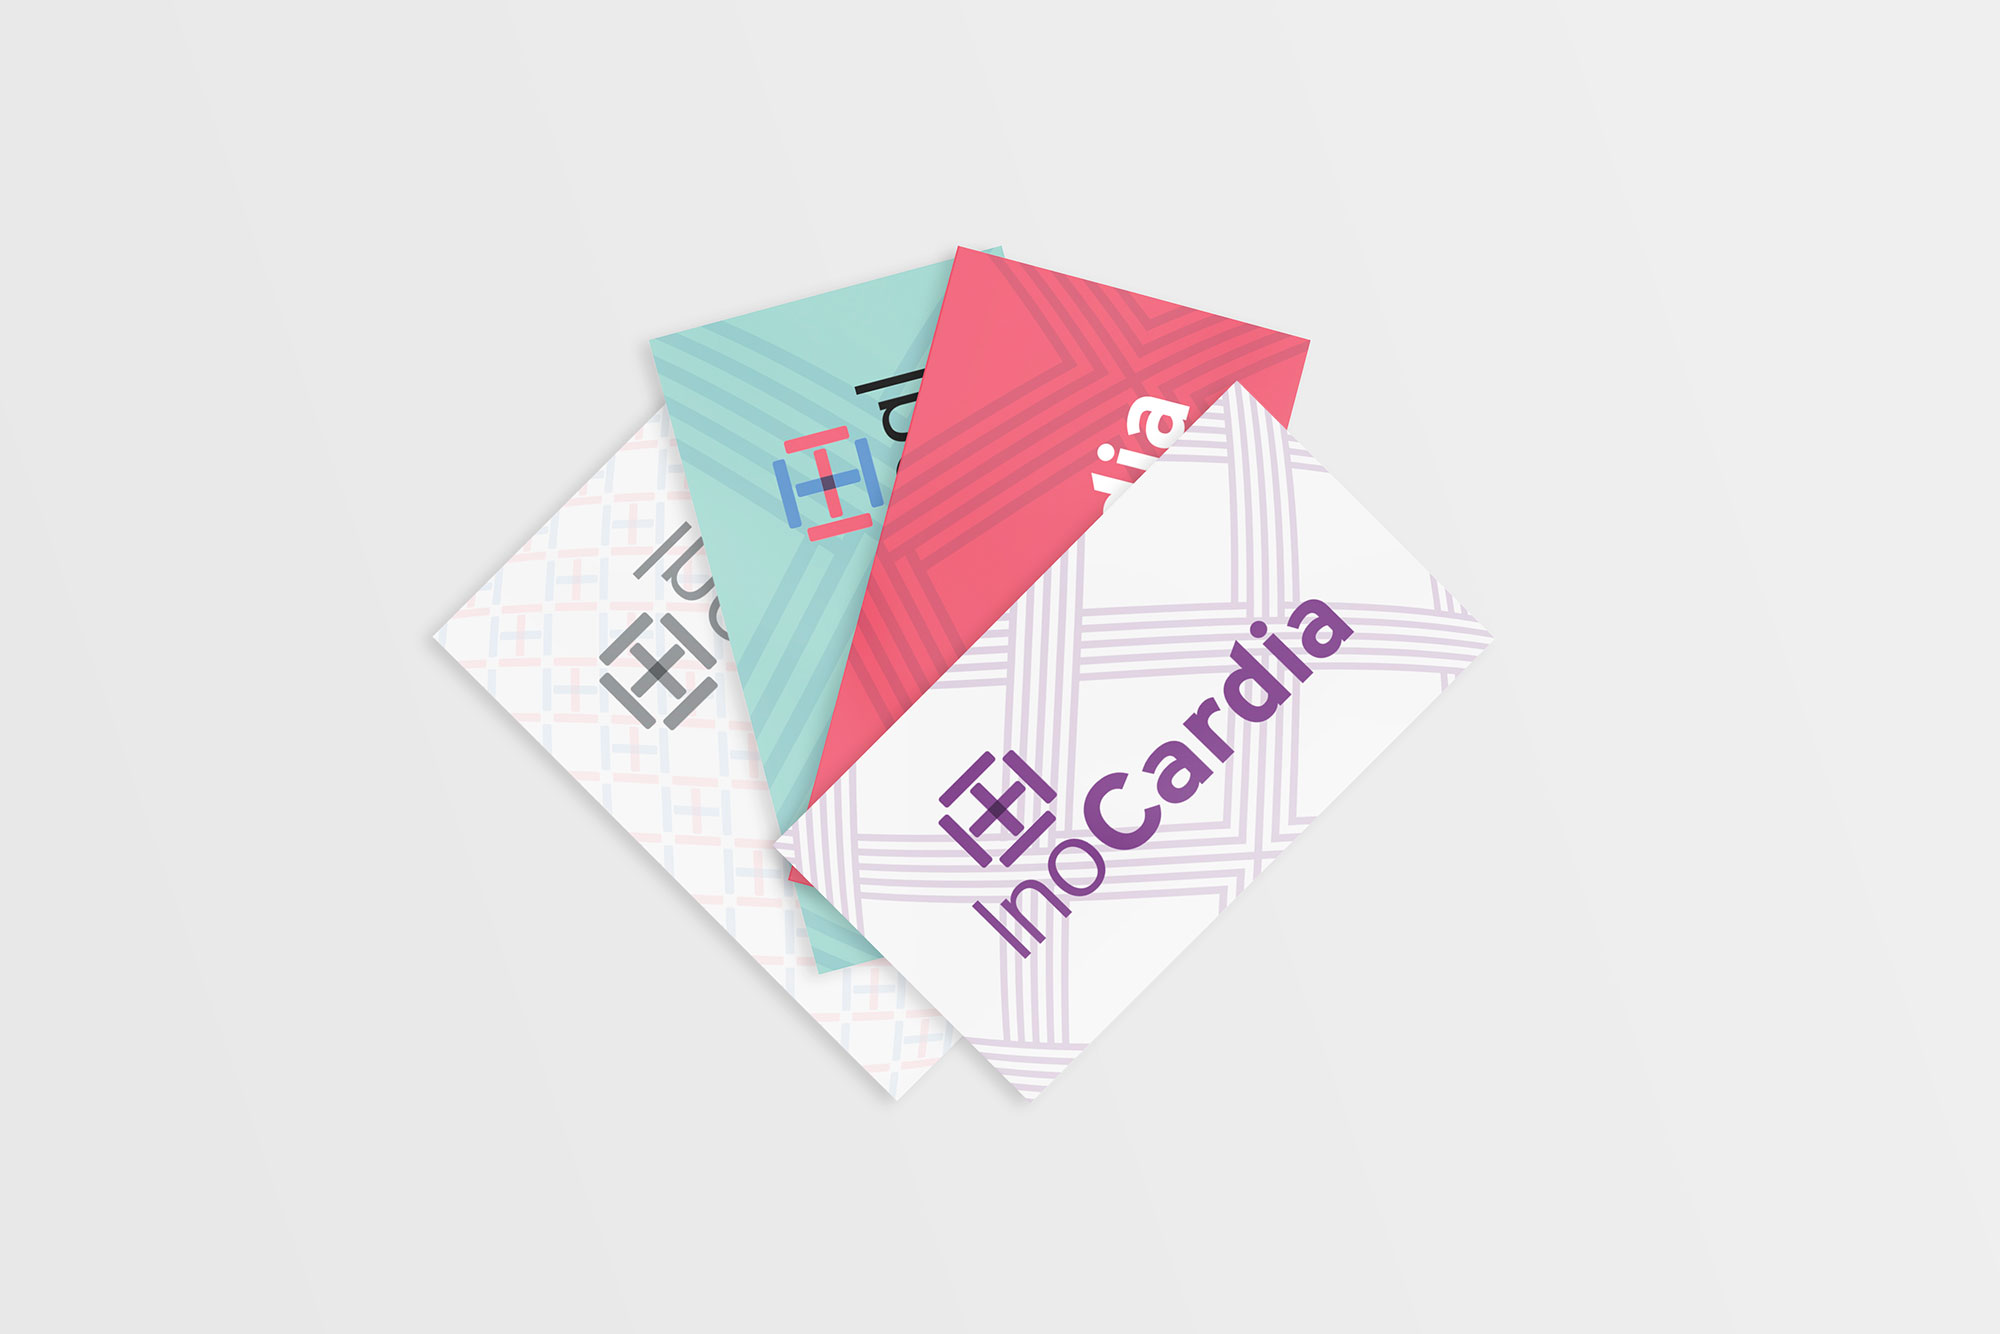 Stationary for InoCardia Limited, brand identity, branding, business cards design by Martin Sully